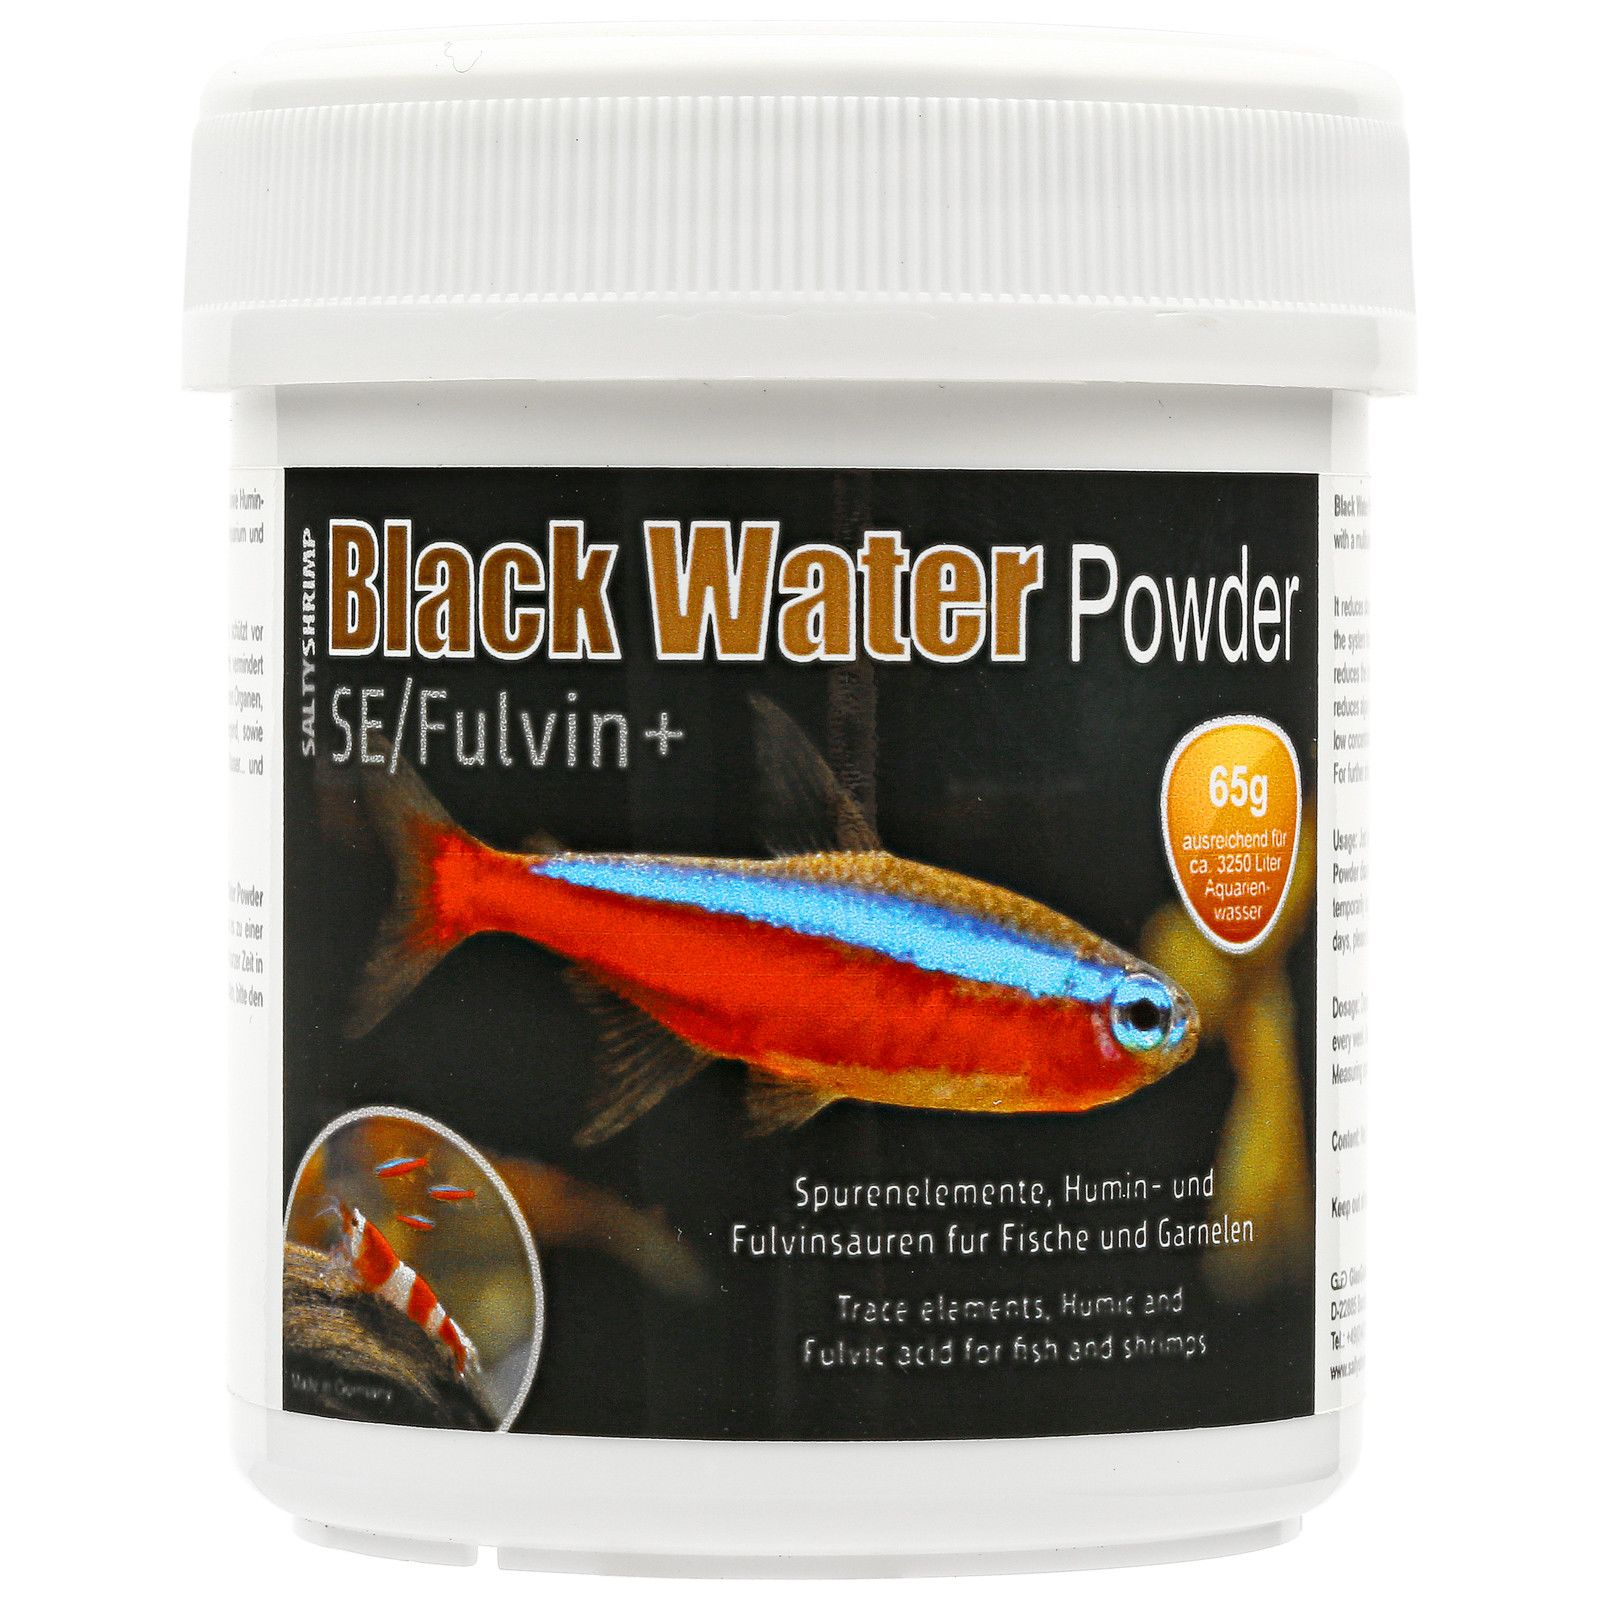 SaltyShrimp - Black Water Powder SE/Fulvin+